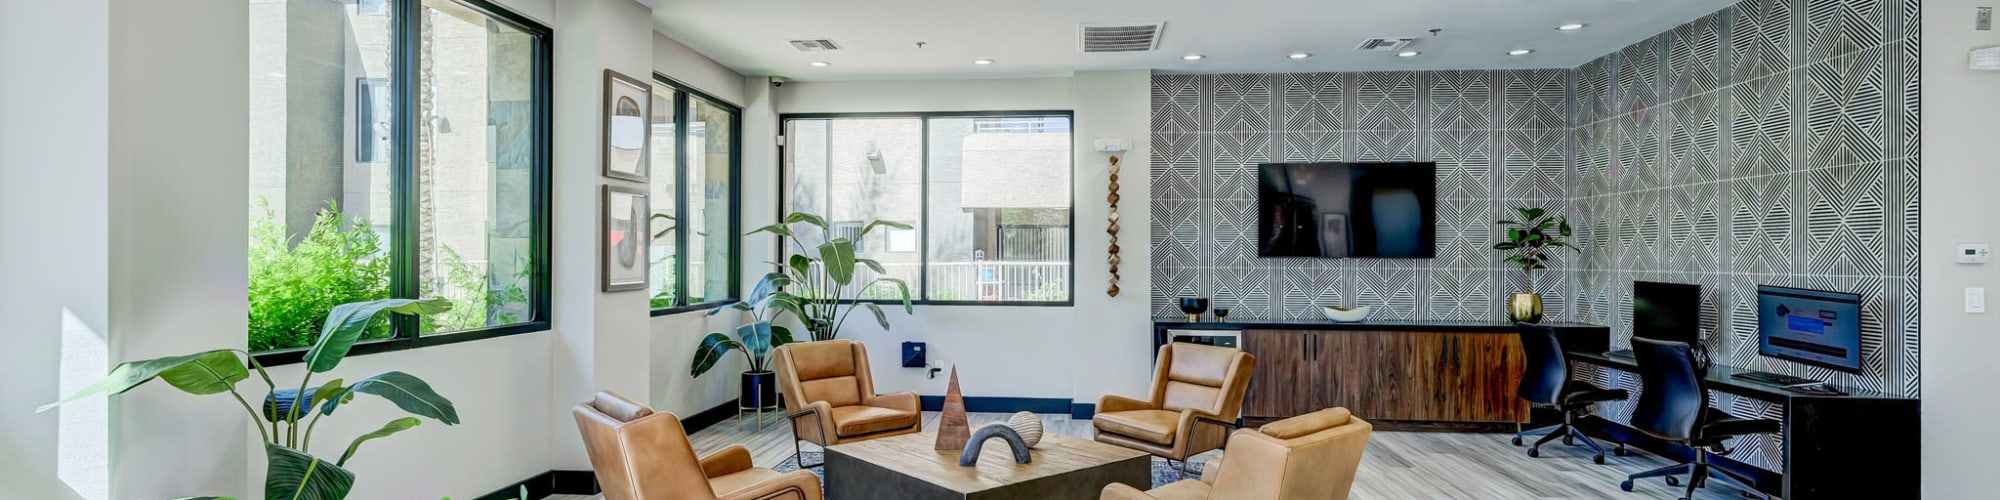 Virtual tour of Spectra on 7th South in Phoenix, Arizona